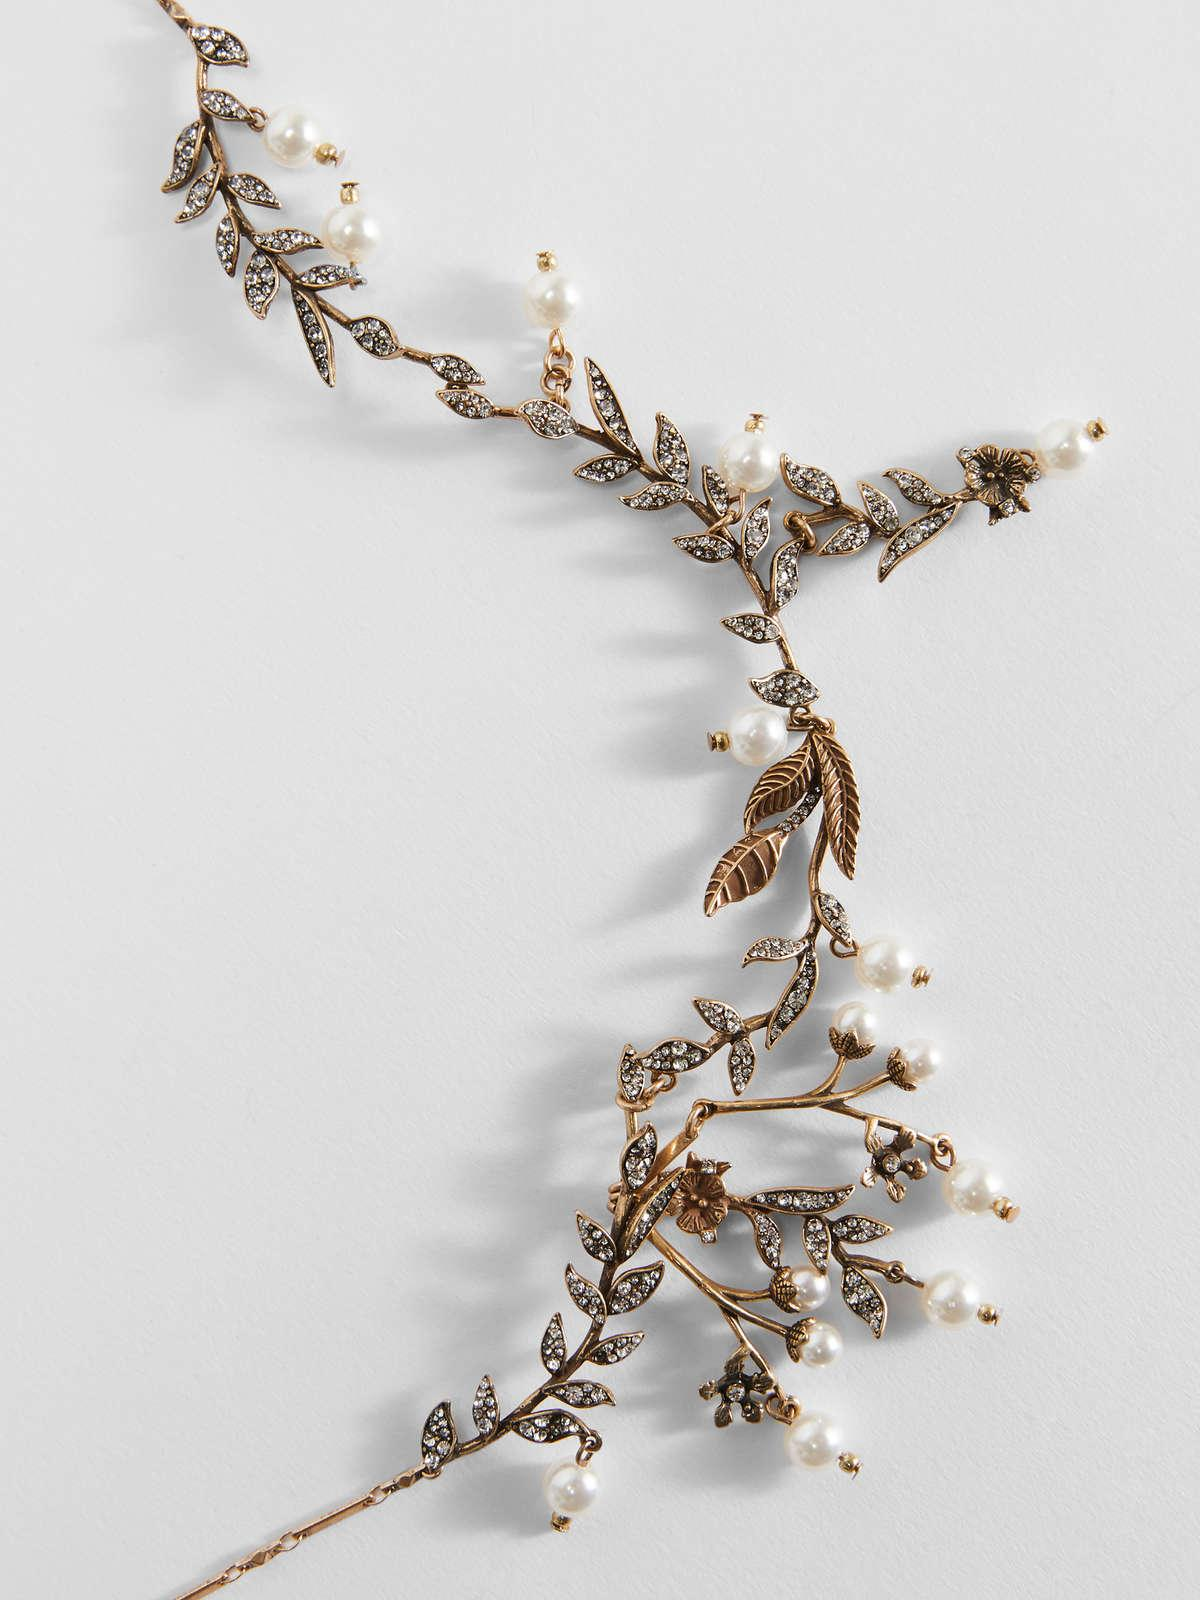 Womens Max Mara Jewelry   Flower Necklace With Pearl Details Gold